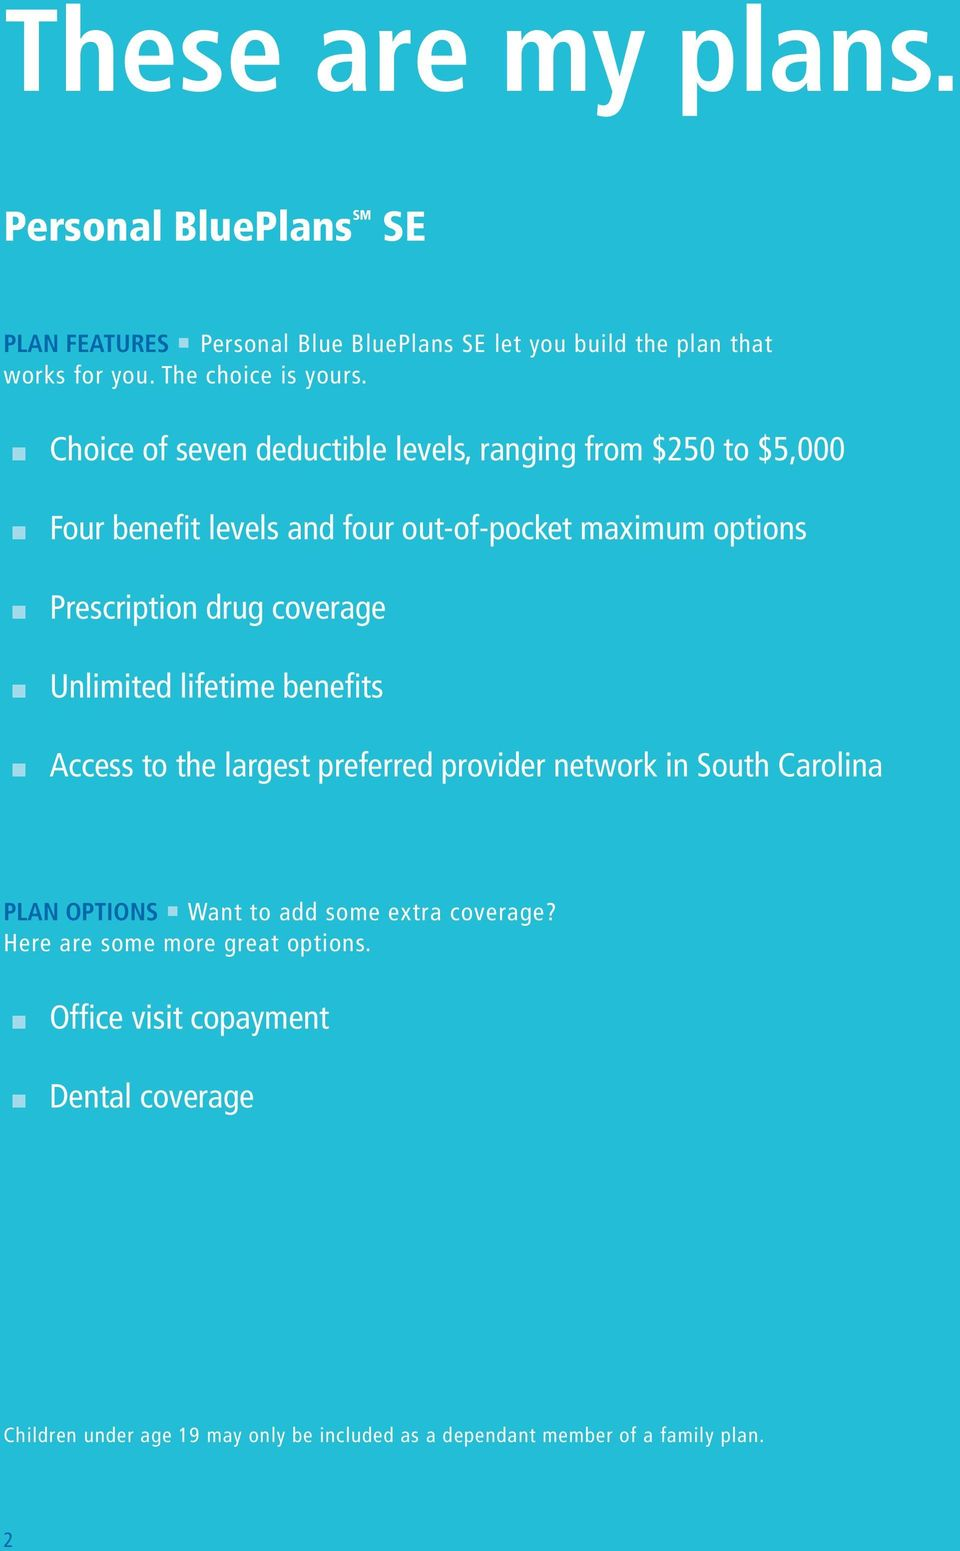 coverage n Unlimited lifetime benefits n Access to the largest preferred provider network in South Carolina PLAN OPTIONS Want to add some extra coverage?